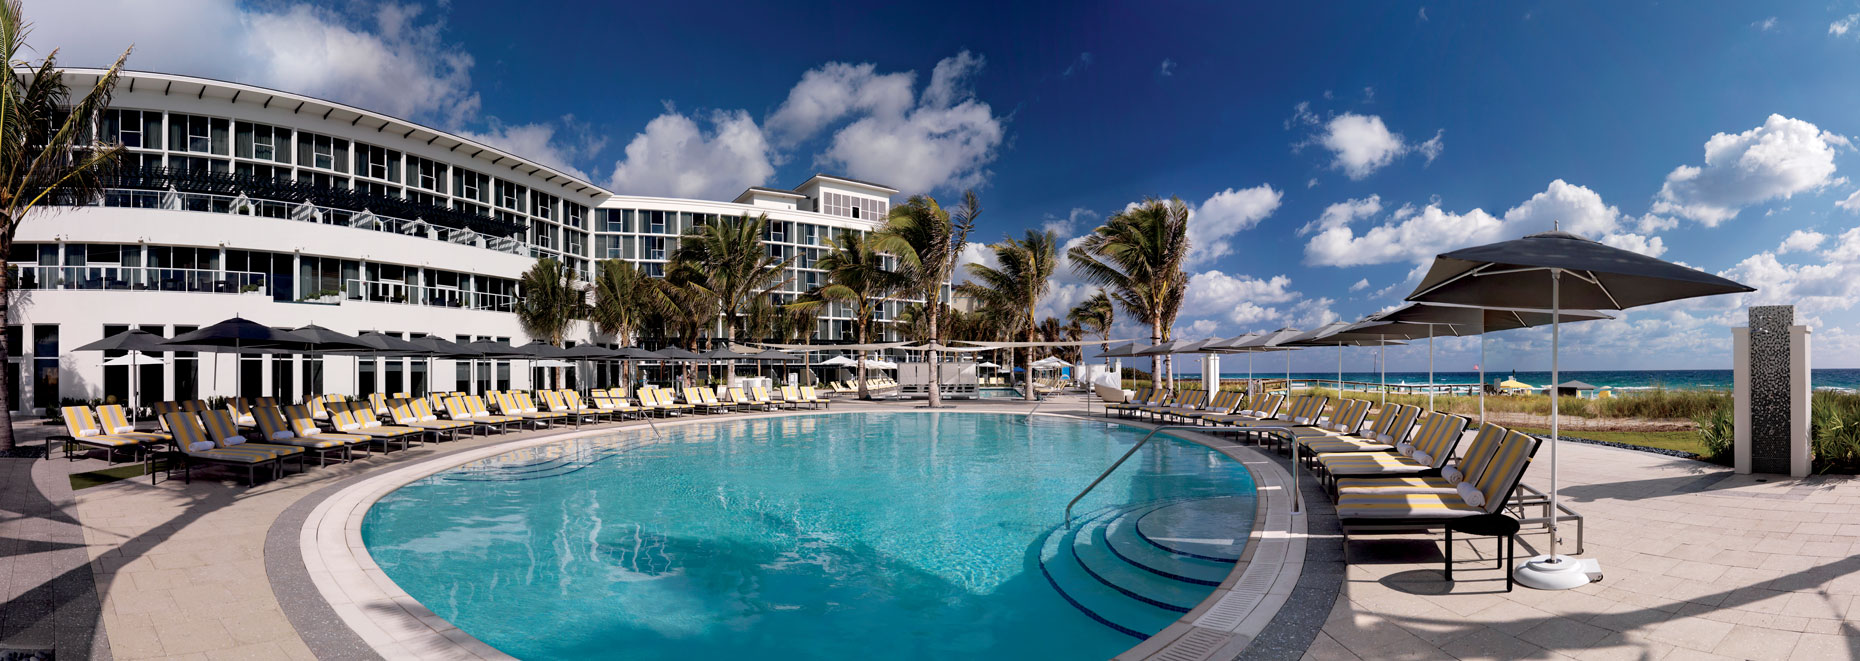 090225_BOCA_ATLPOOL_OVERVIEW2_PANO_F